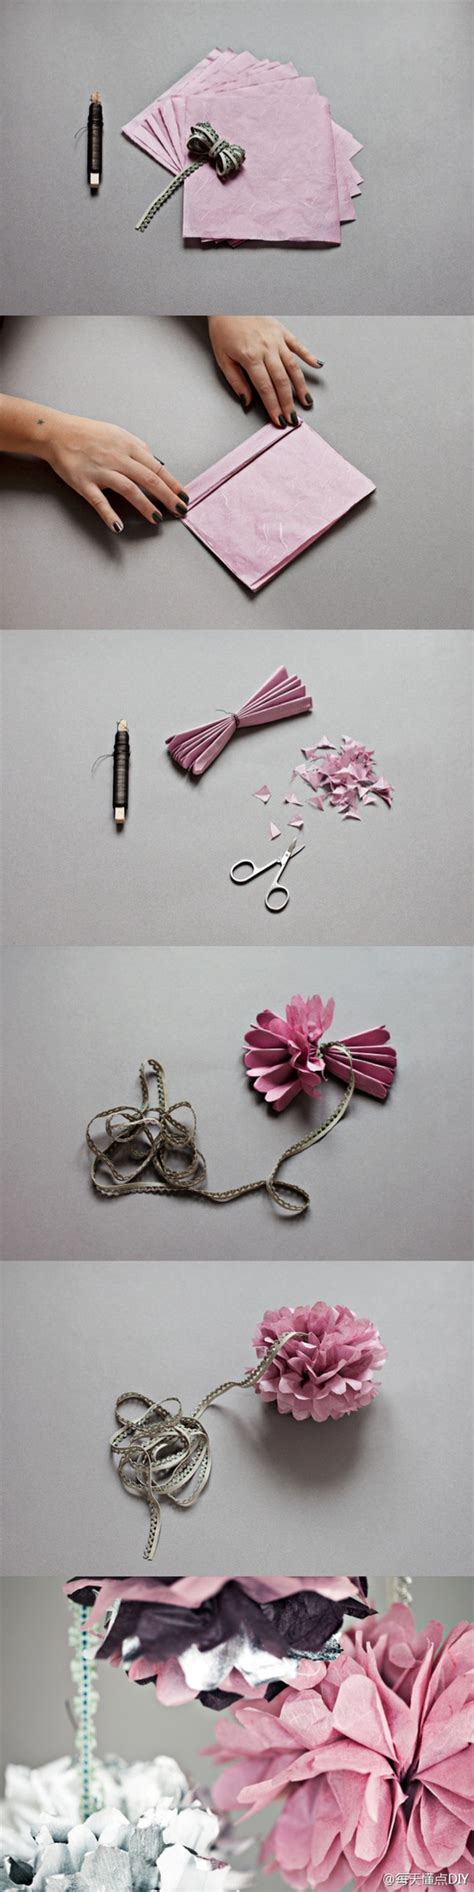 diy projects for teens 10 diy crafts ideas for teens diy ideas tips